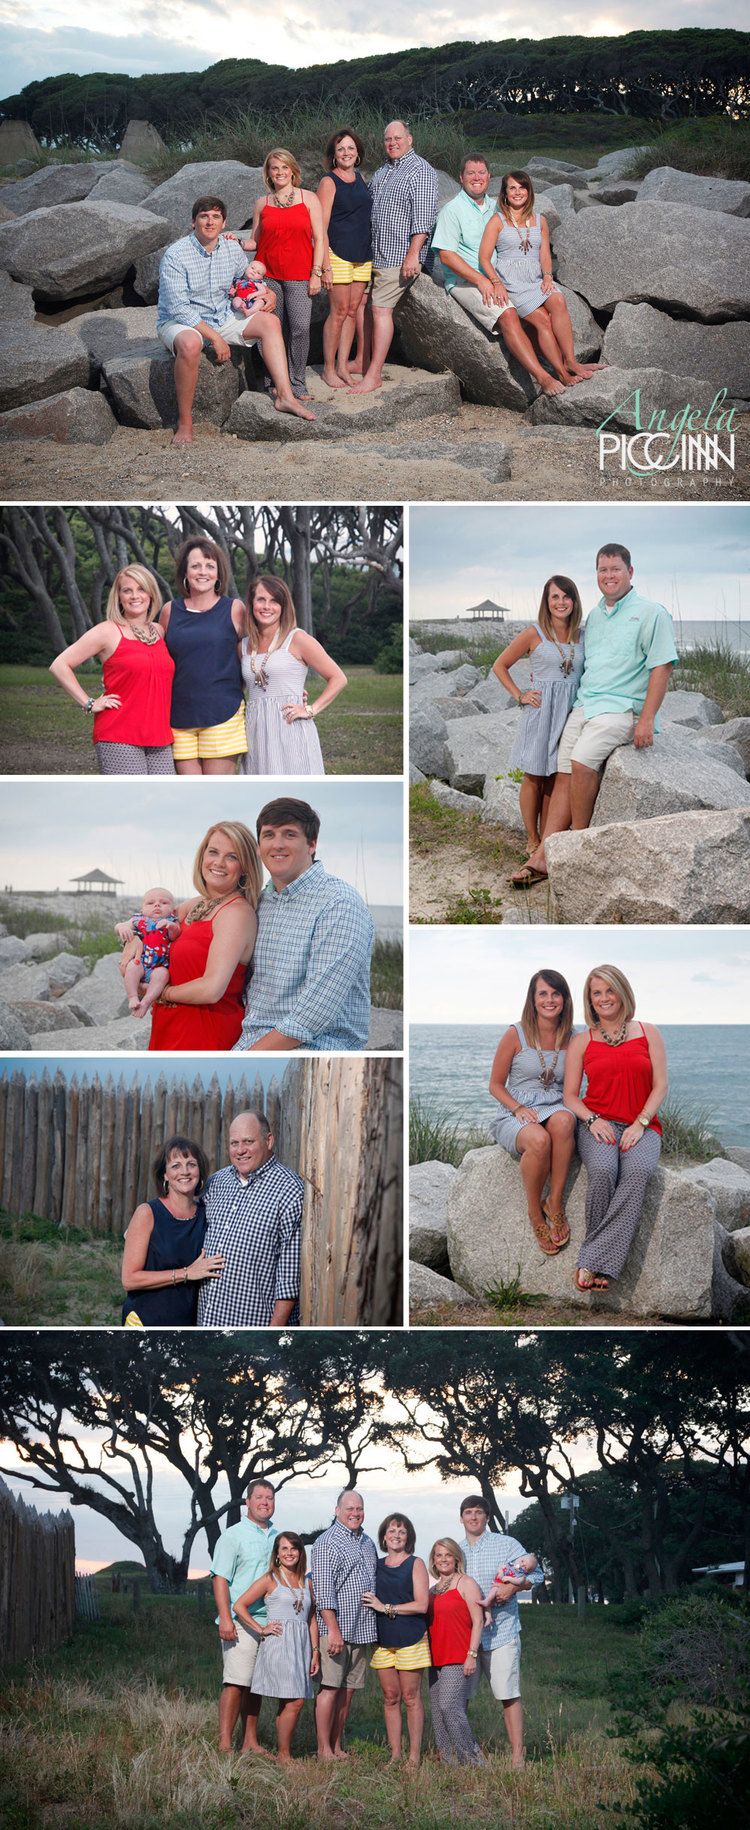 Fort Fisher Family Portraits by Angela Piccinin